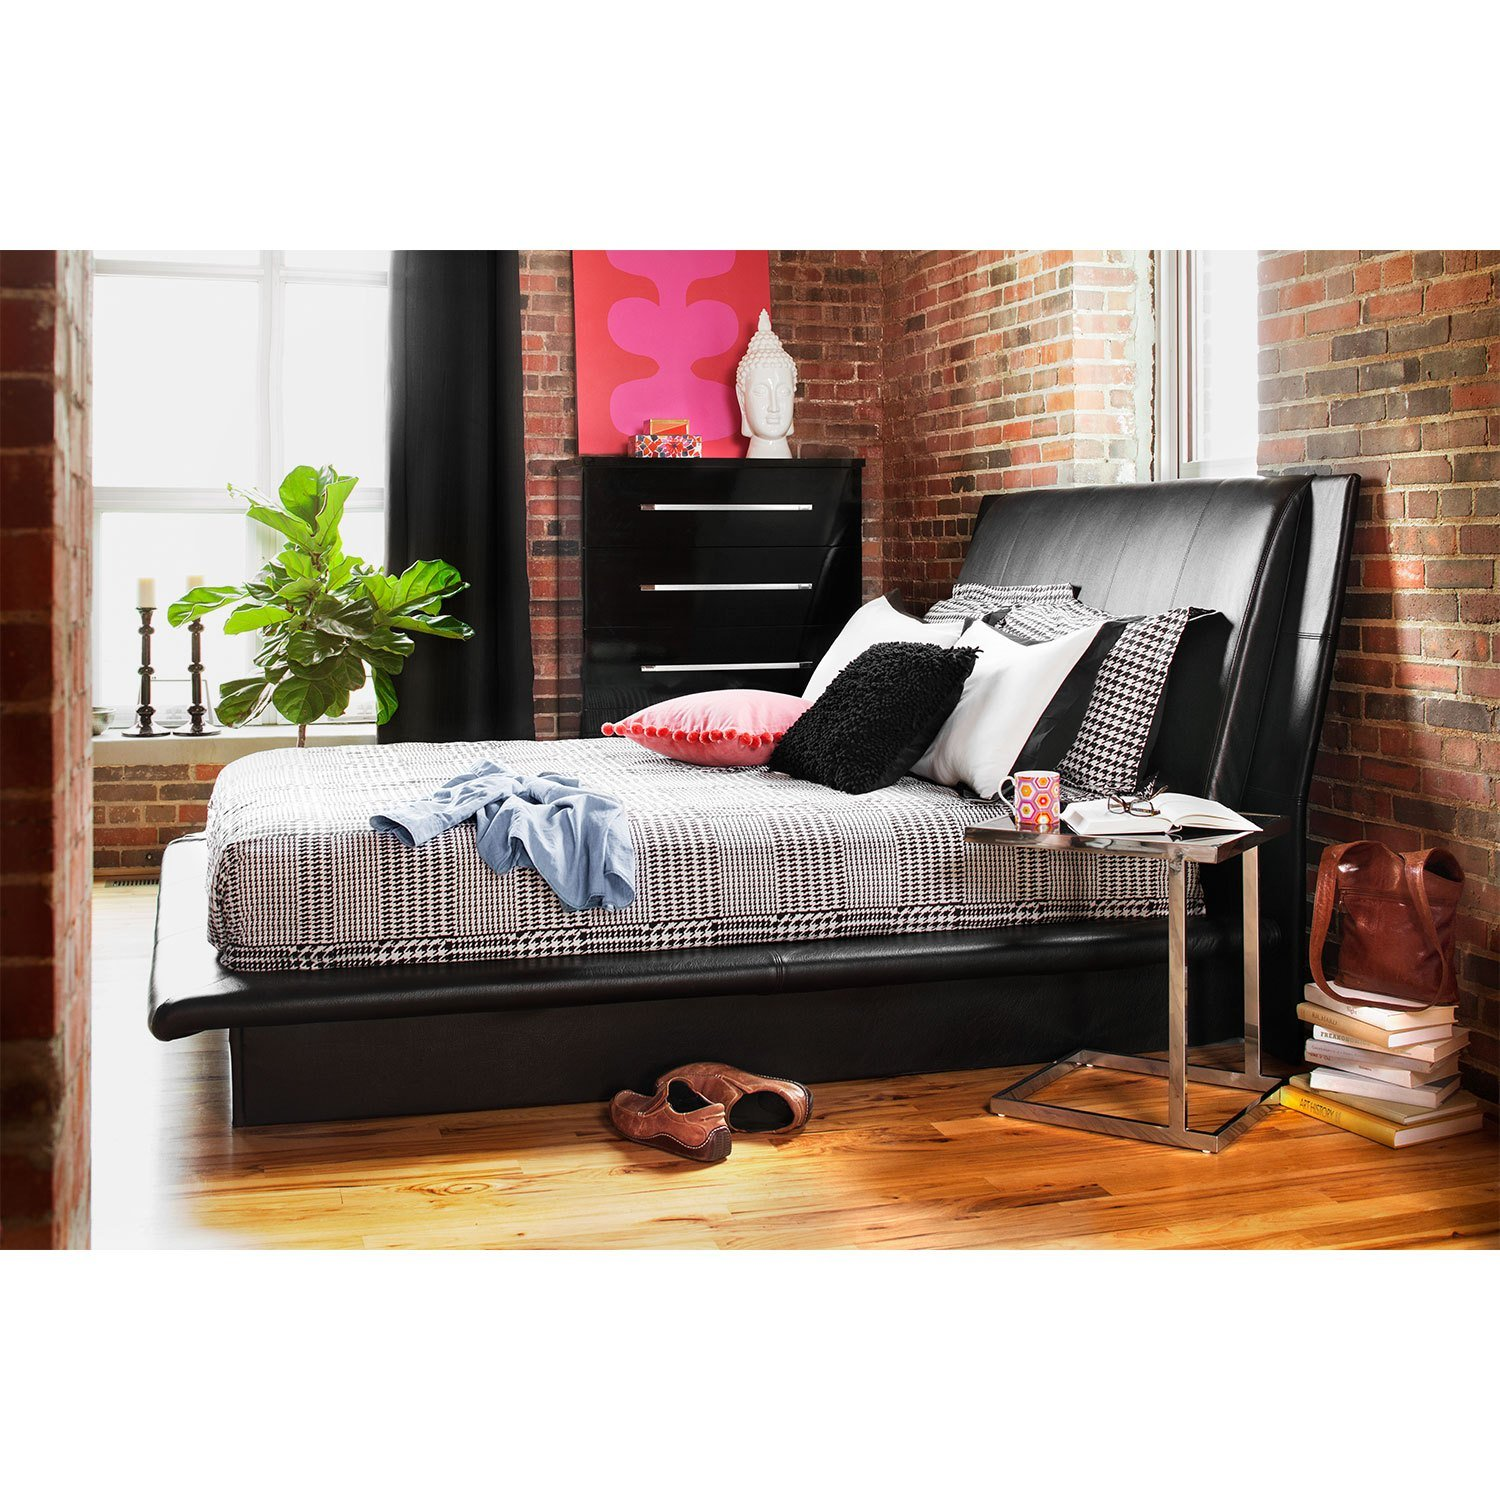 Best Dimora Queen Upholstered Bed Black American Signature With Pictures